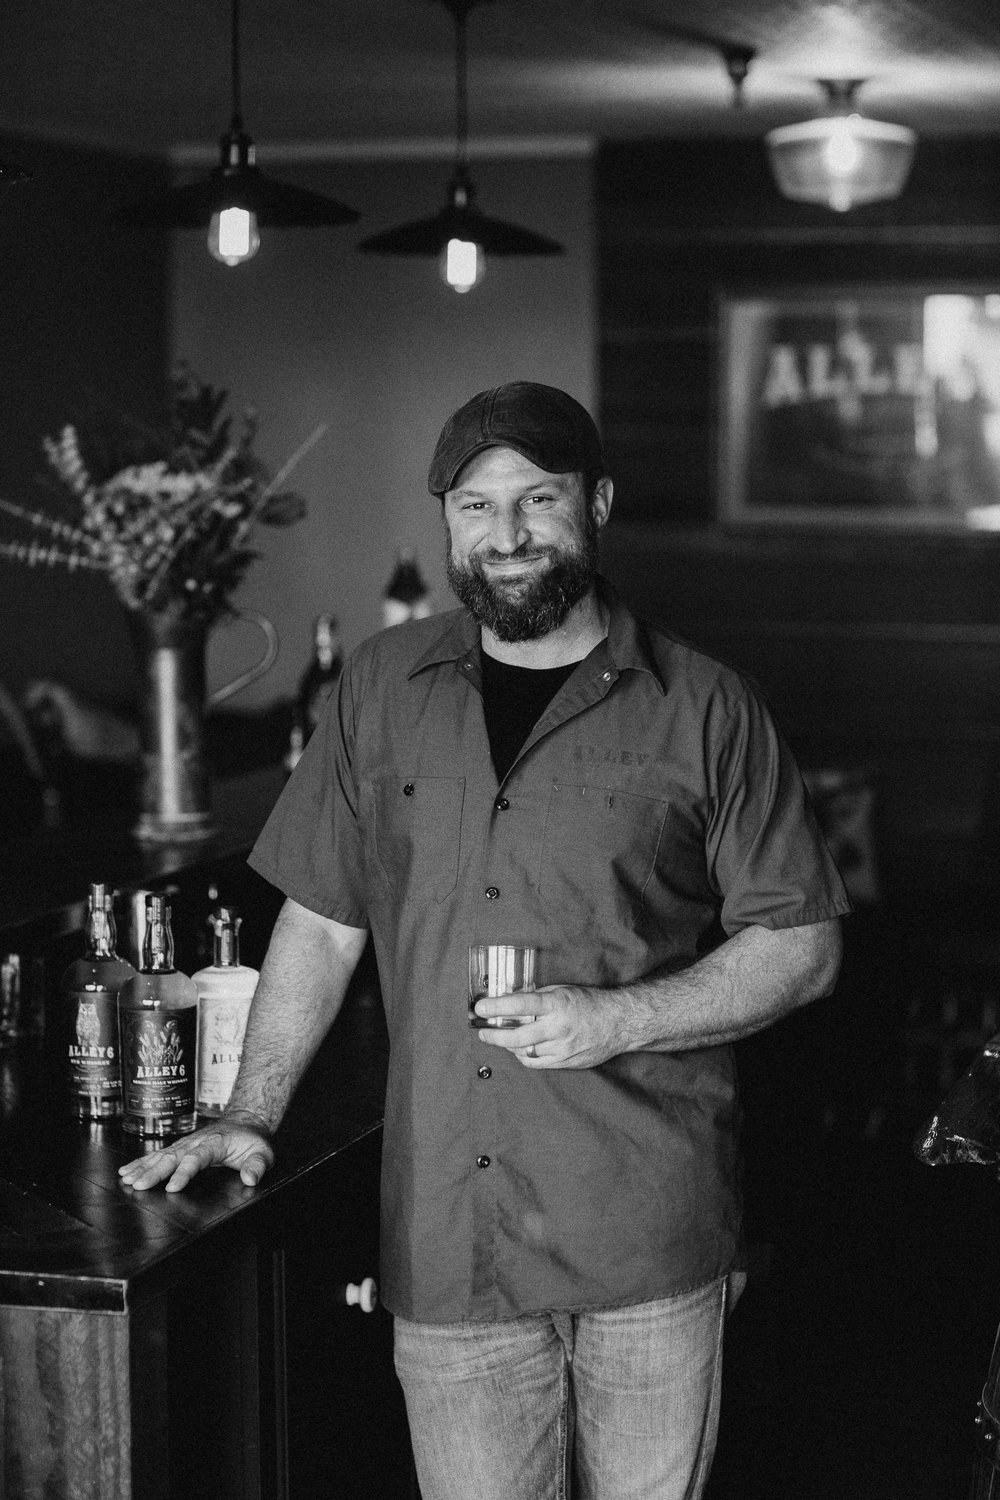 JASON JORGENSEN Co-Founder & Head Distiller, he likes booze, more so than anyone else.